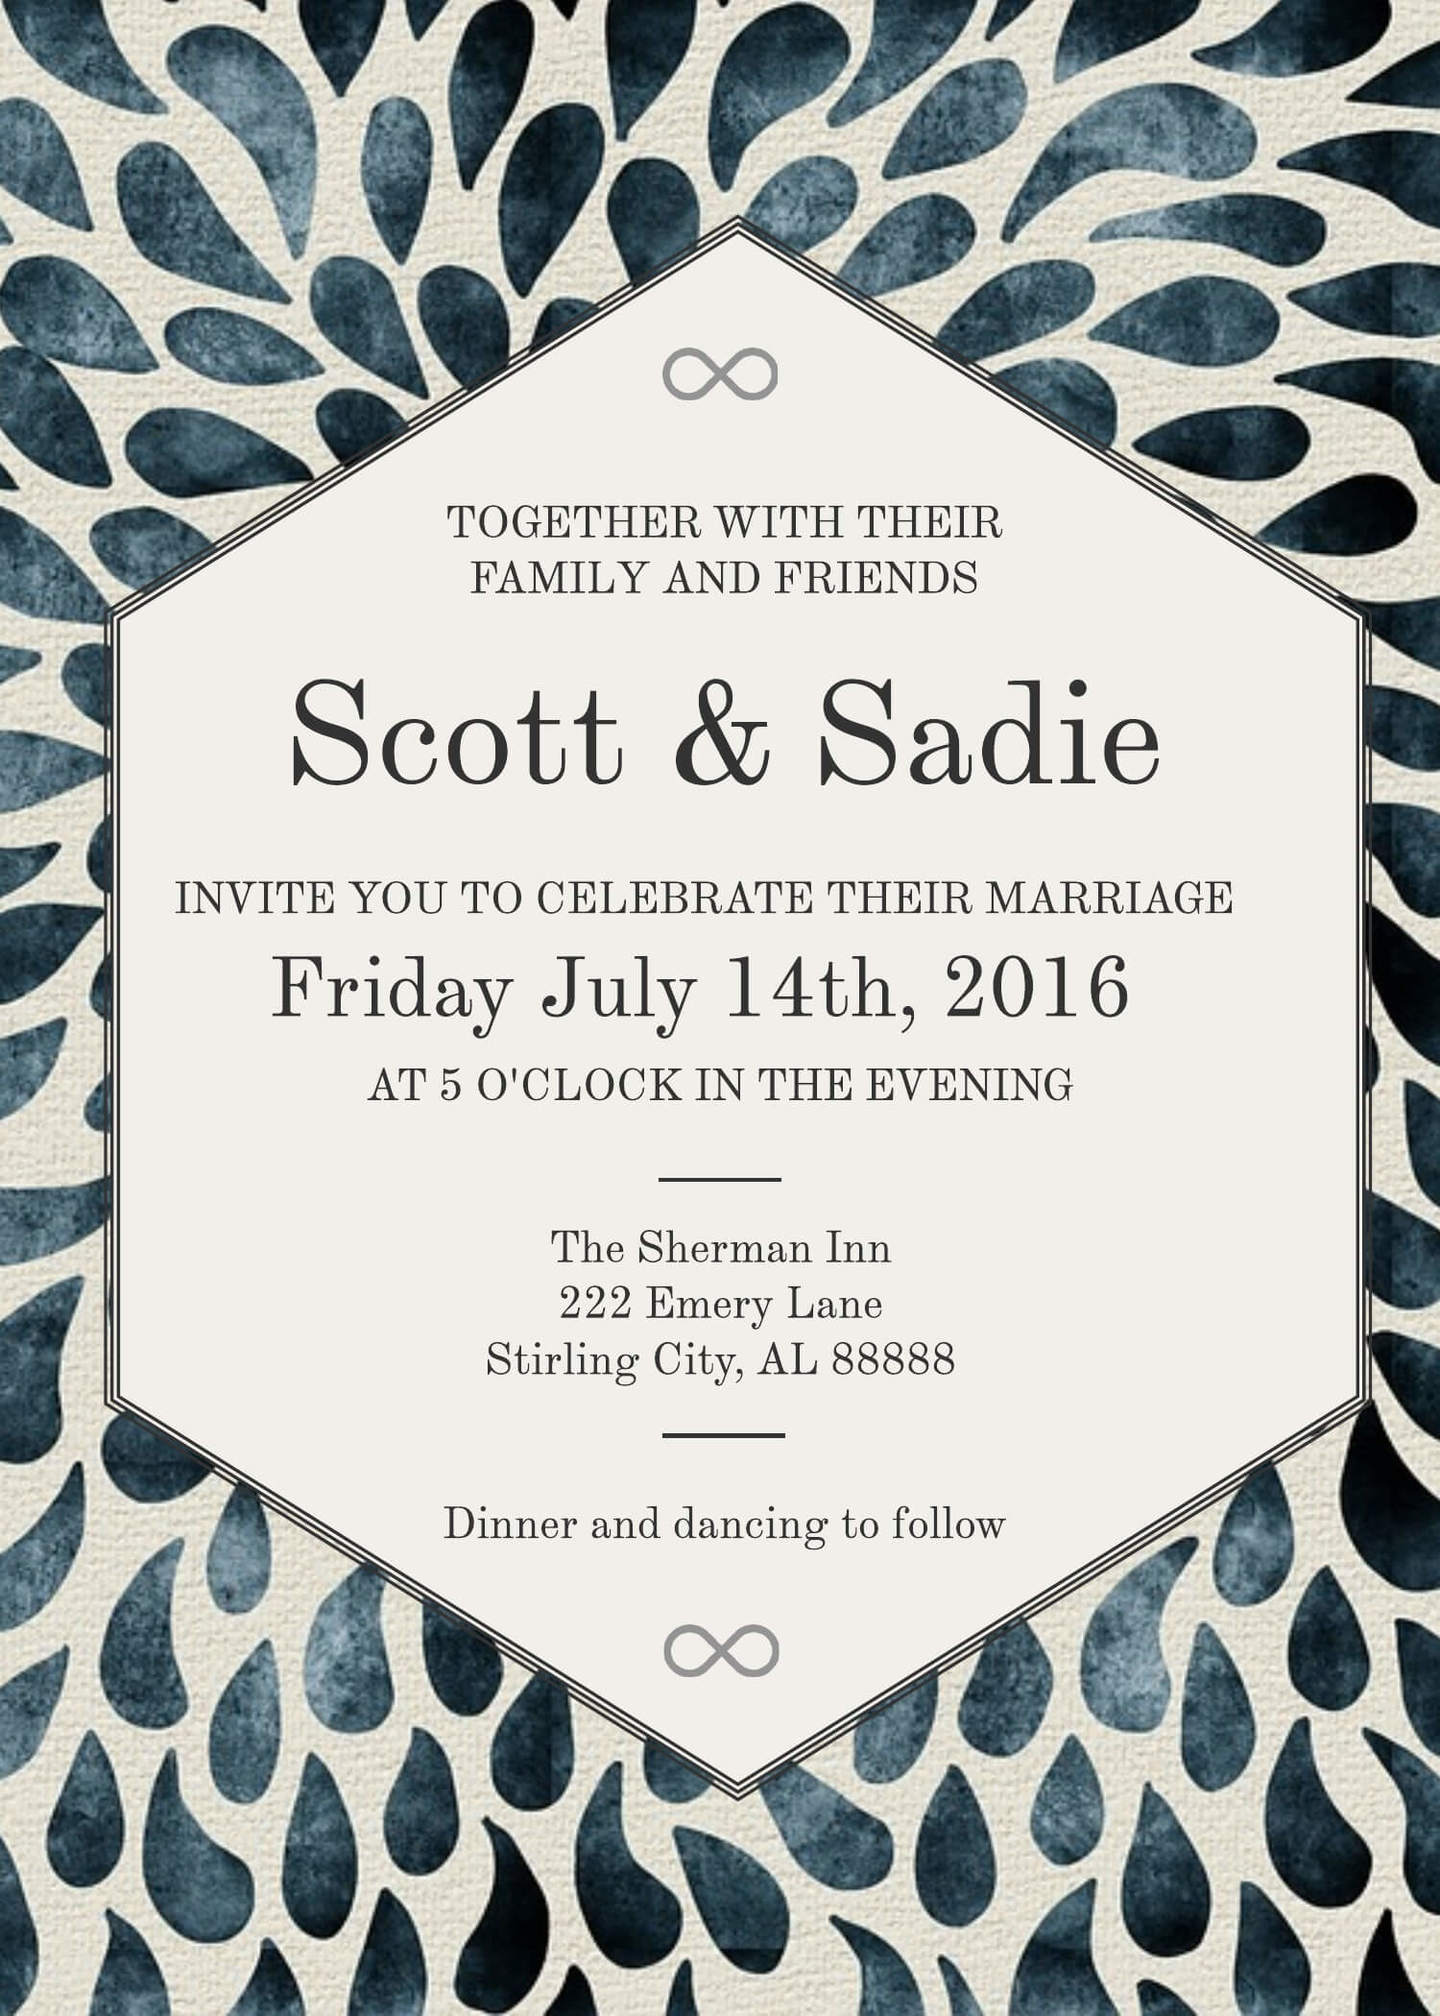 16 free invitation card templates examples lucidpress rsvp wedding invitation 5x7 stopboris